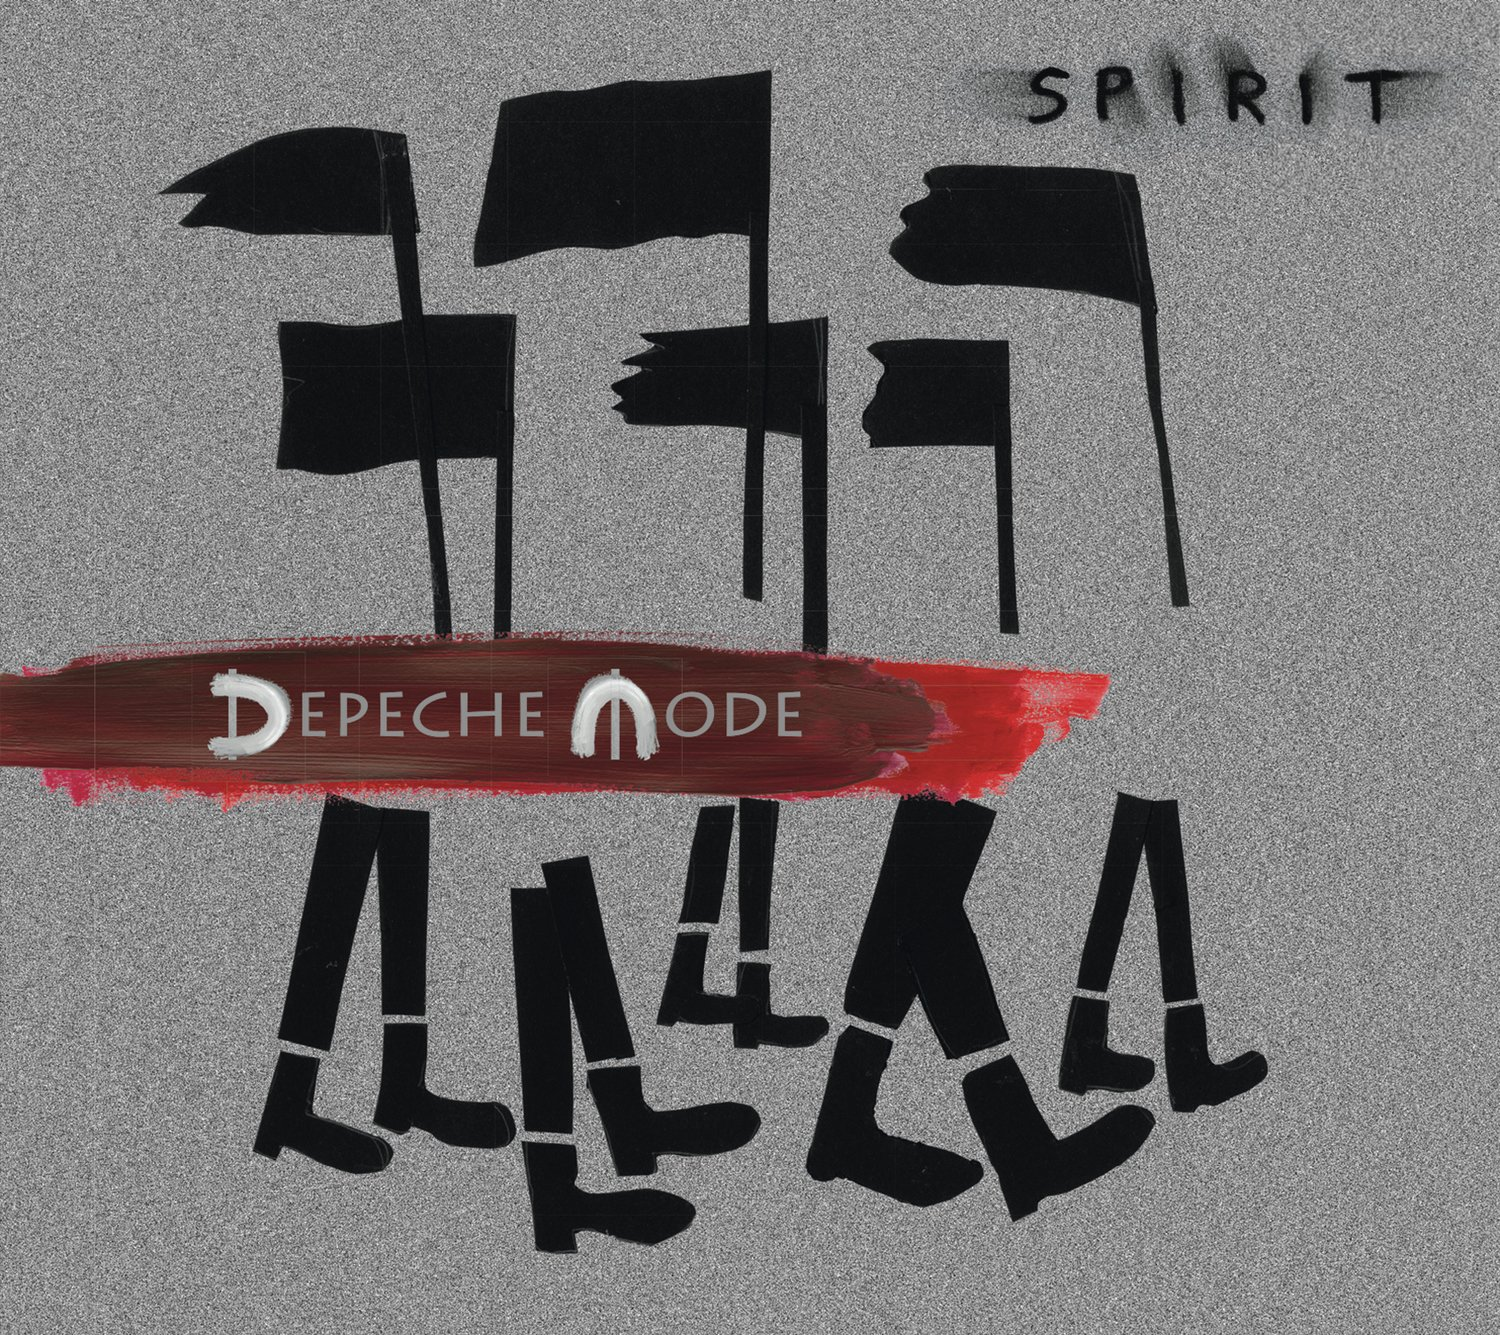 Depeche Mode - Spirit (2017)  mp3- 320 Kbps